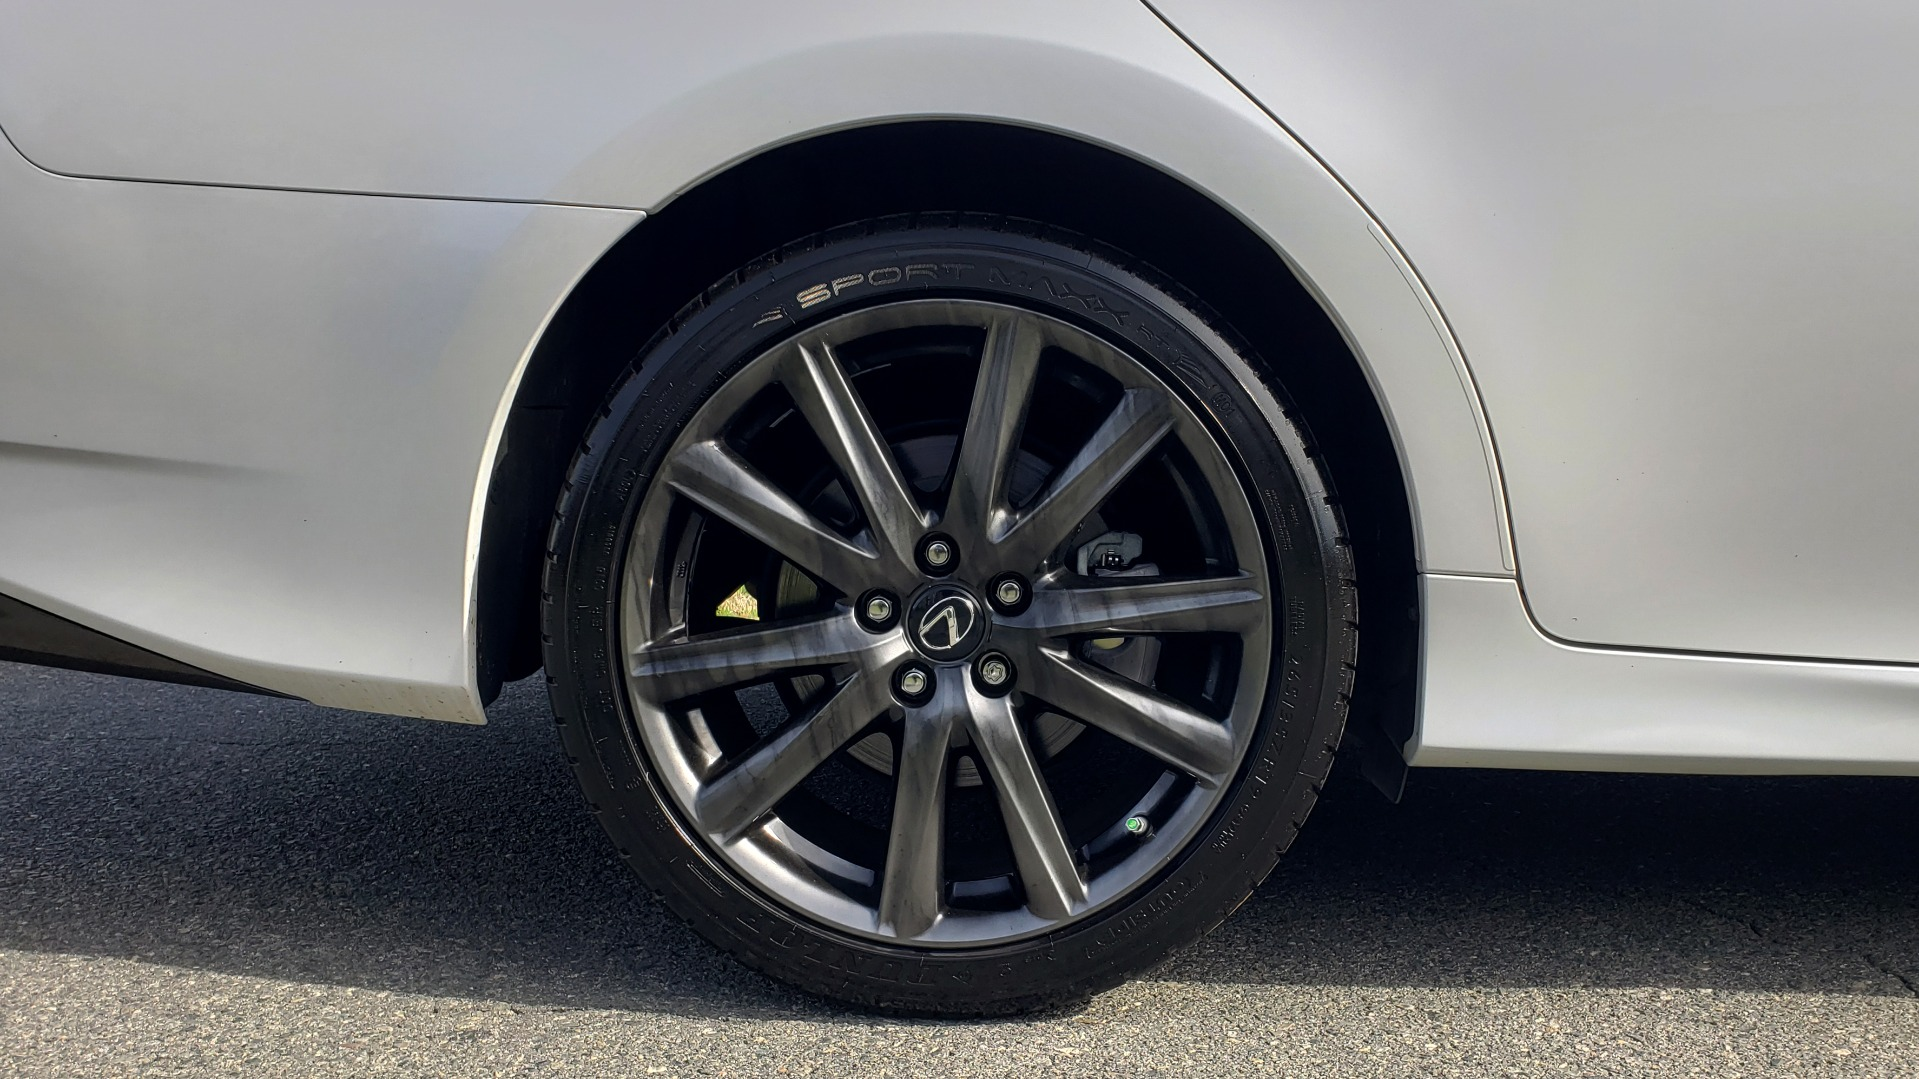 Used 2013 Lexus GS 350 F-SPORT / NAV / SUNROOF / BSM / PRK ASST / REARVIEW for sale Sold at Formula Imports in Charlotte NC 28227 78